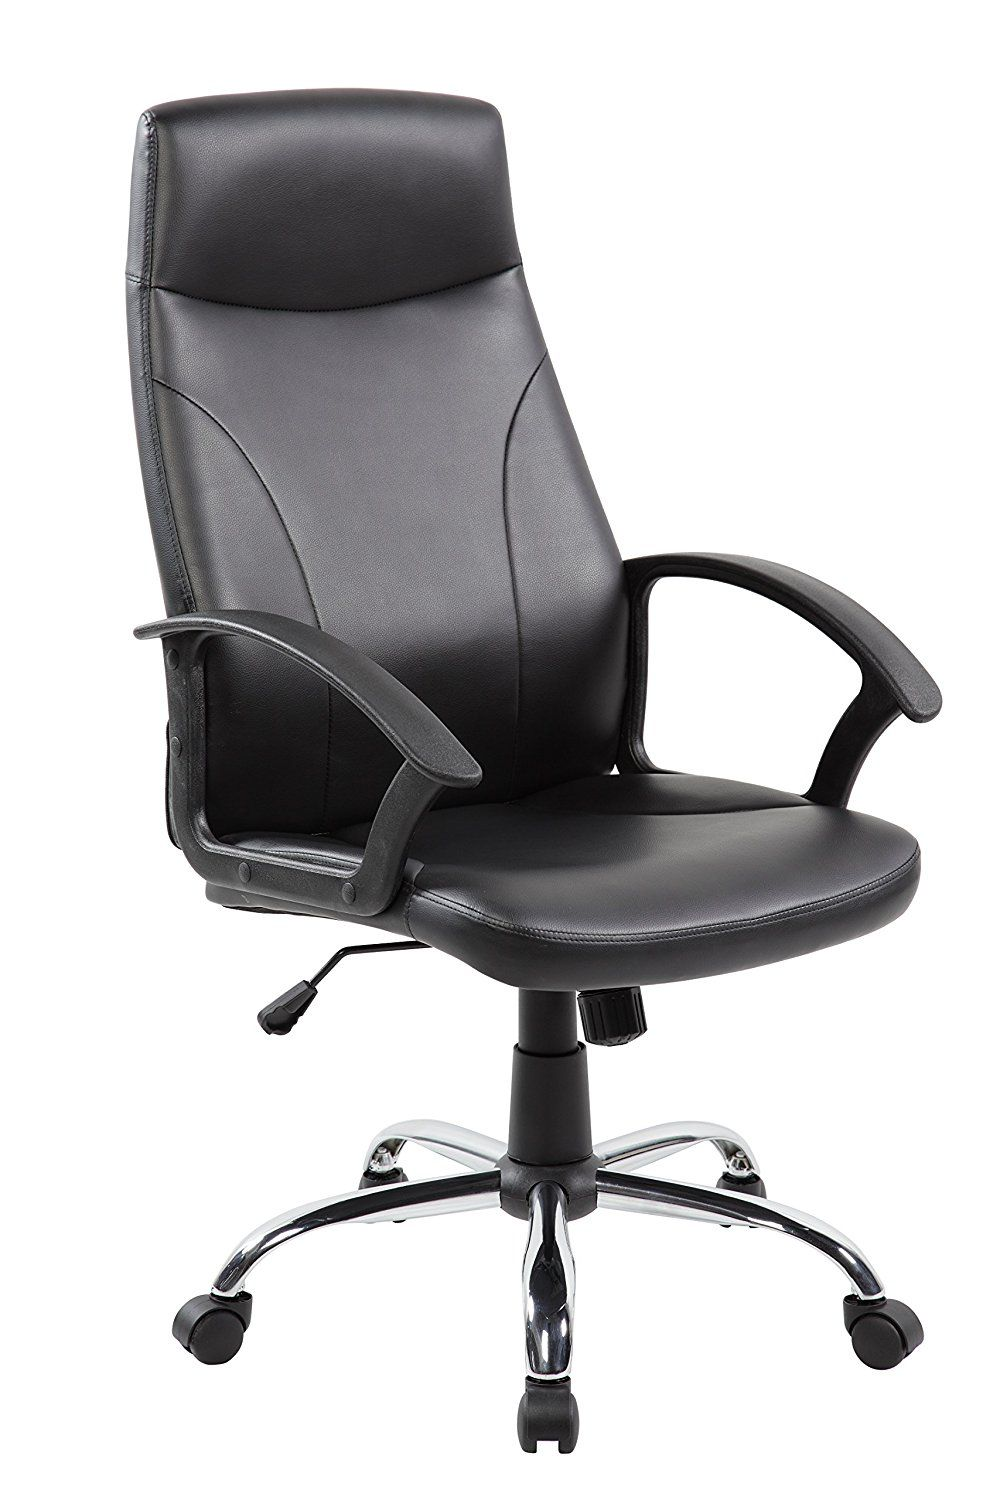 Anji high back executive black leather computer office